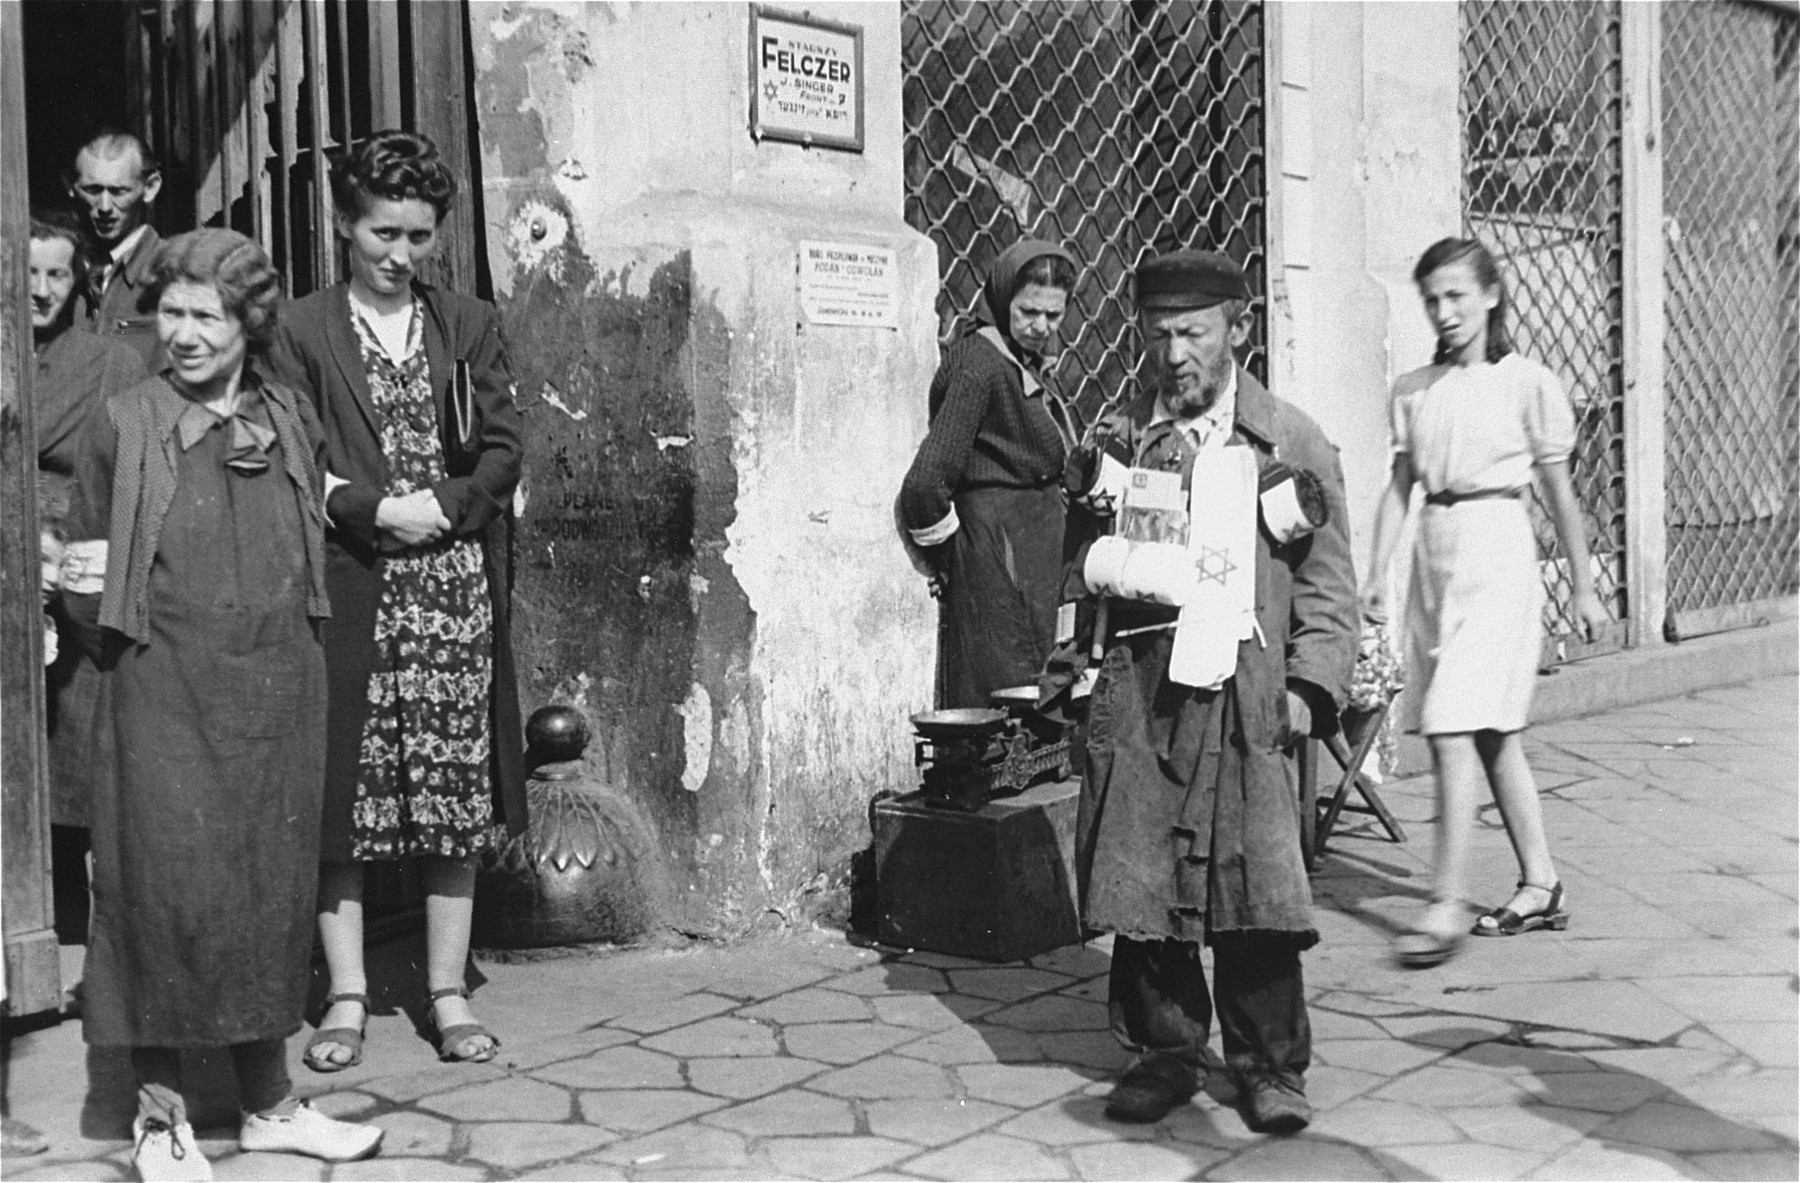 An elderly man sells Jewish armbands at the entrance to a building in the Warsaw ghetto.